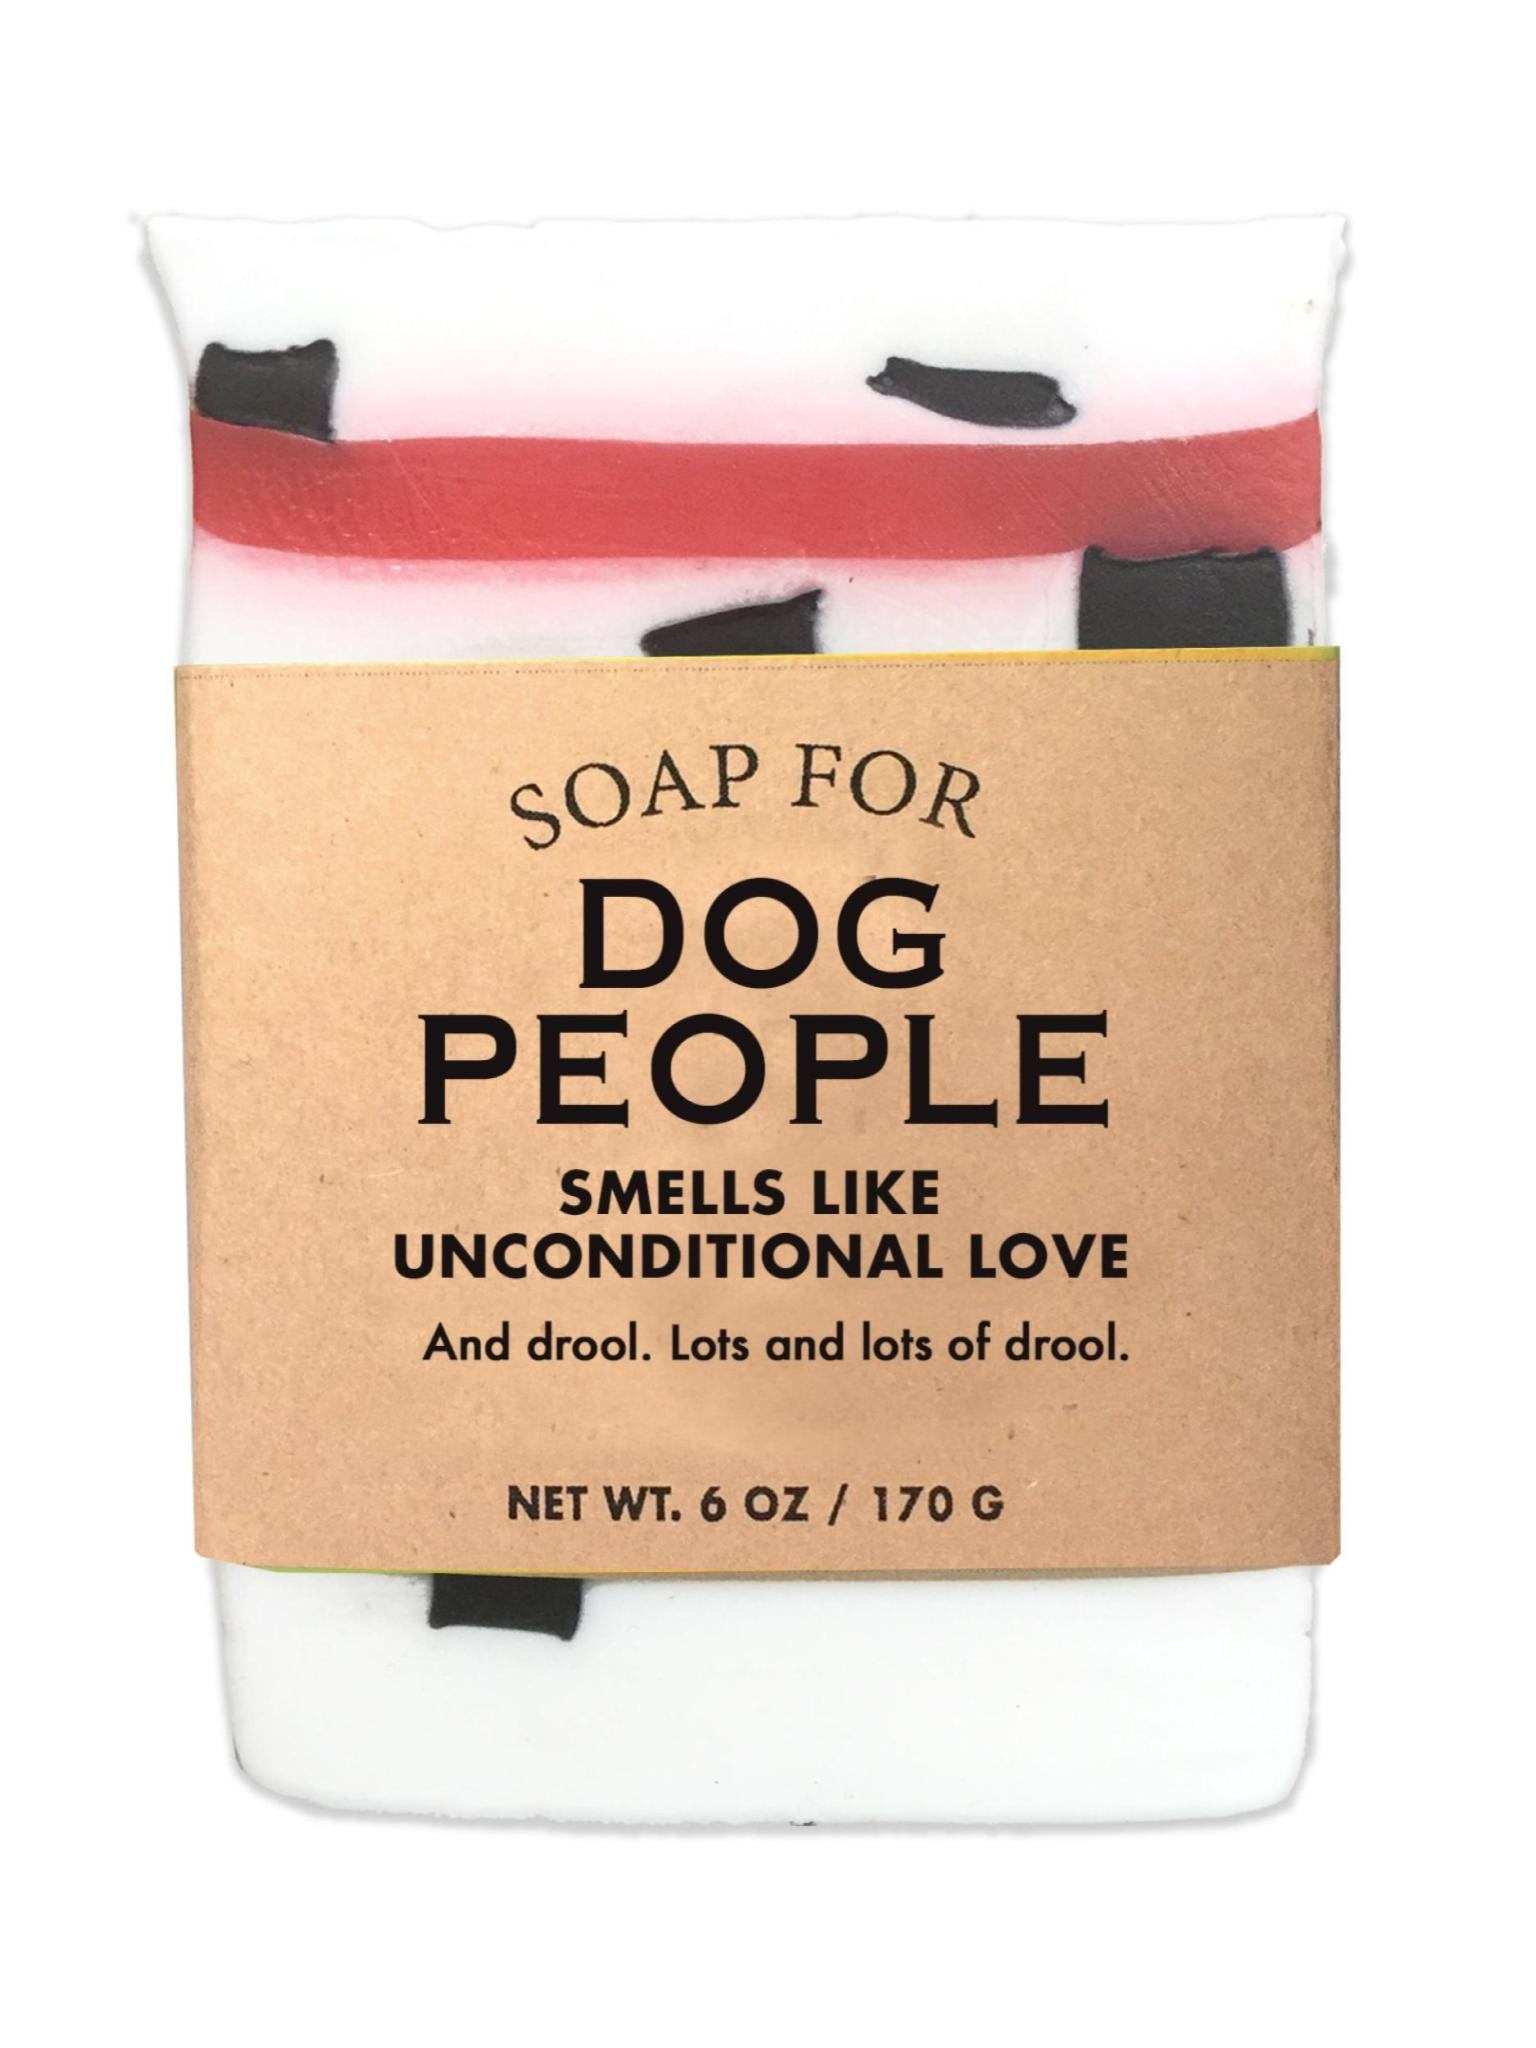 Whiskey River Soap Co. Dog People Soap 6 oz